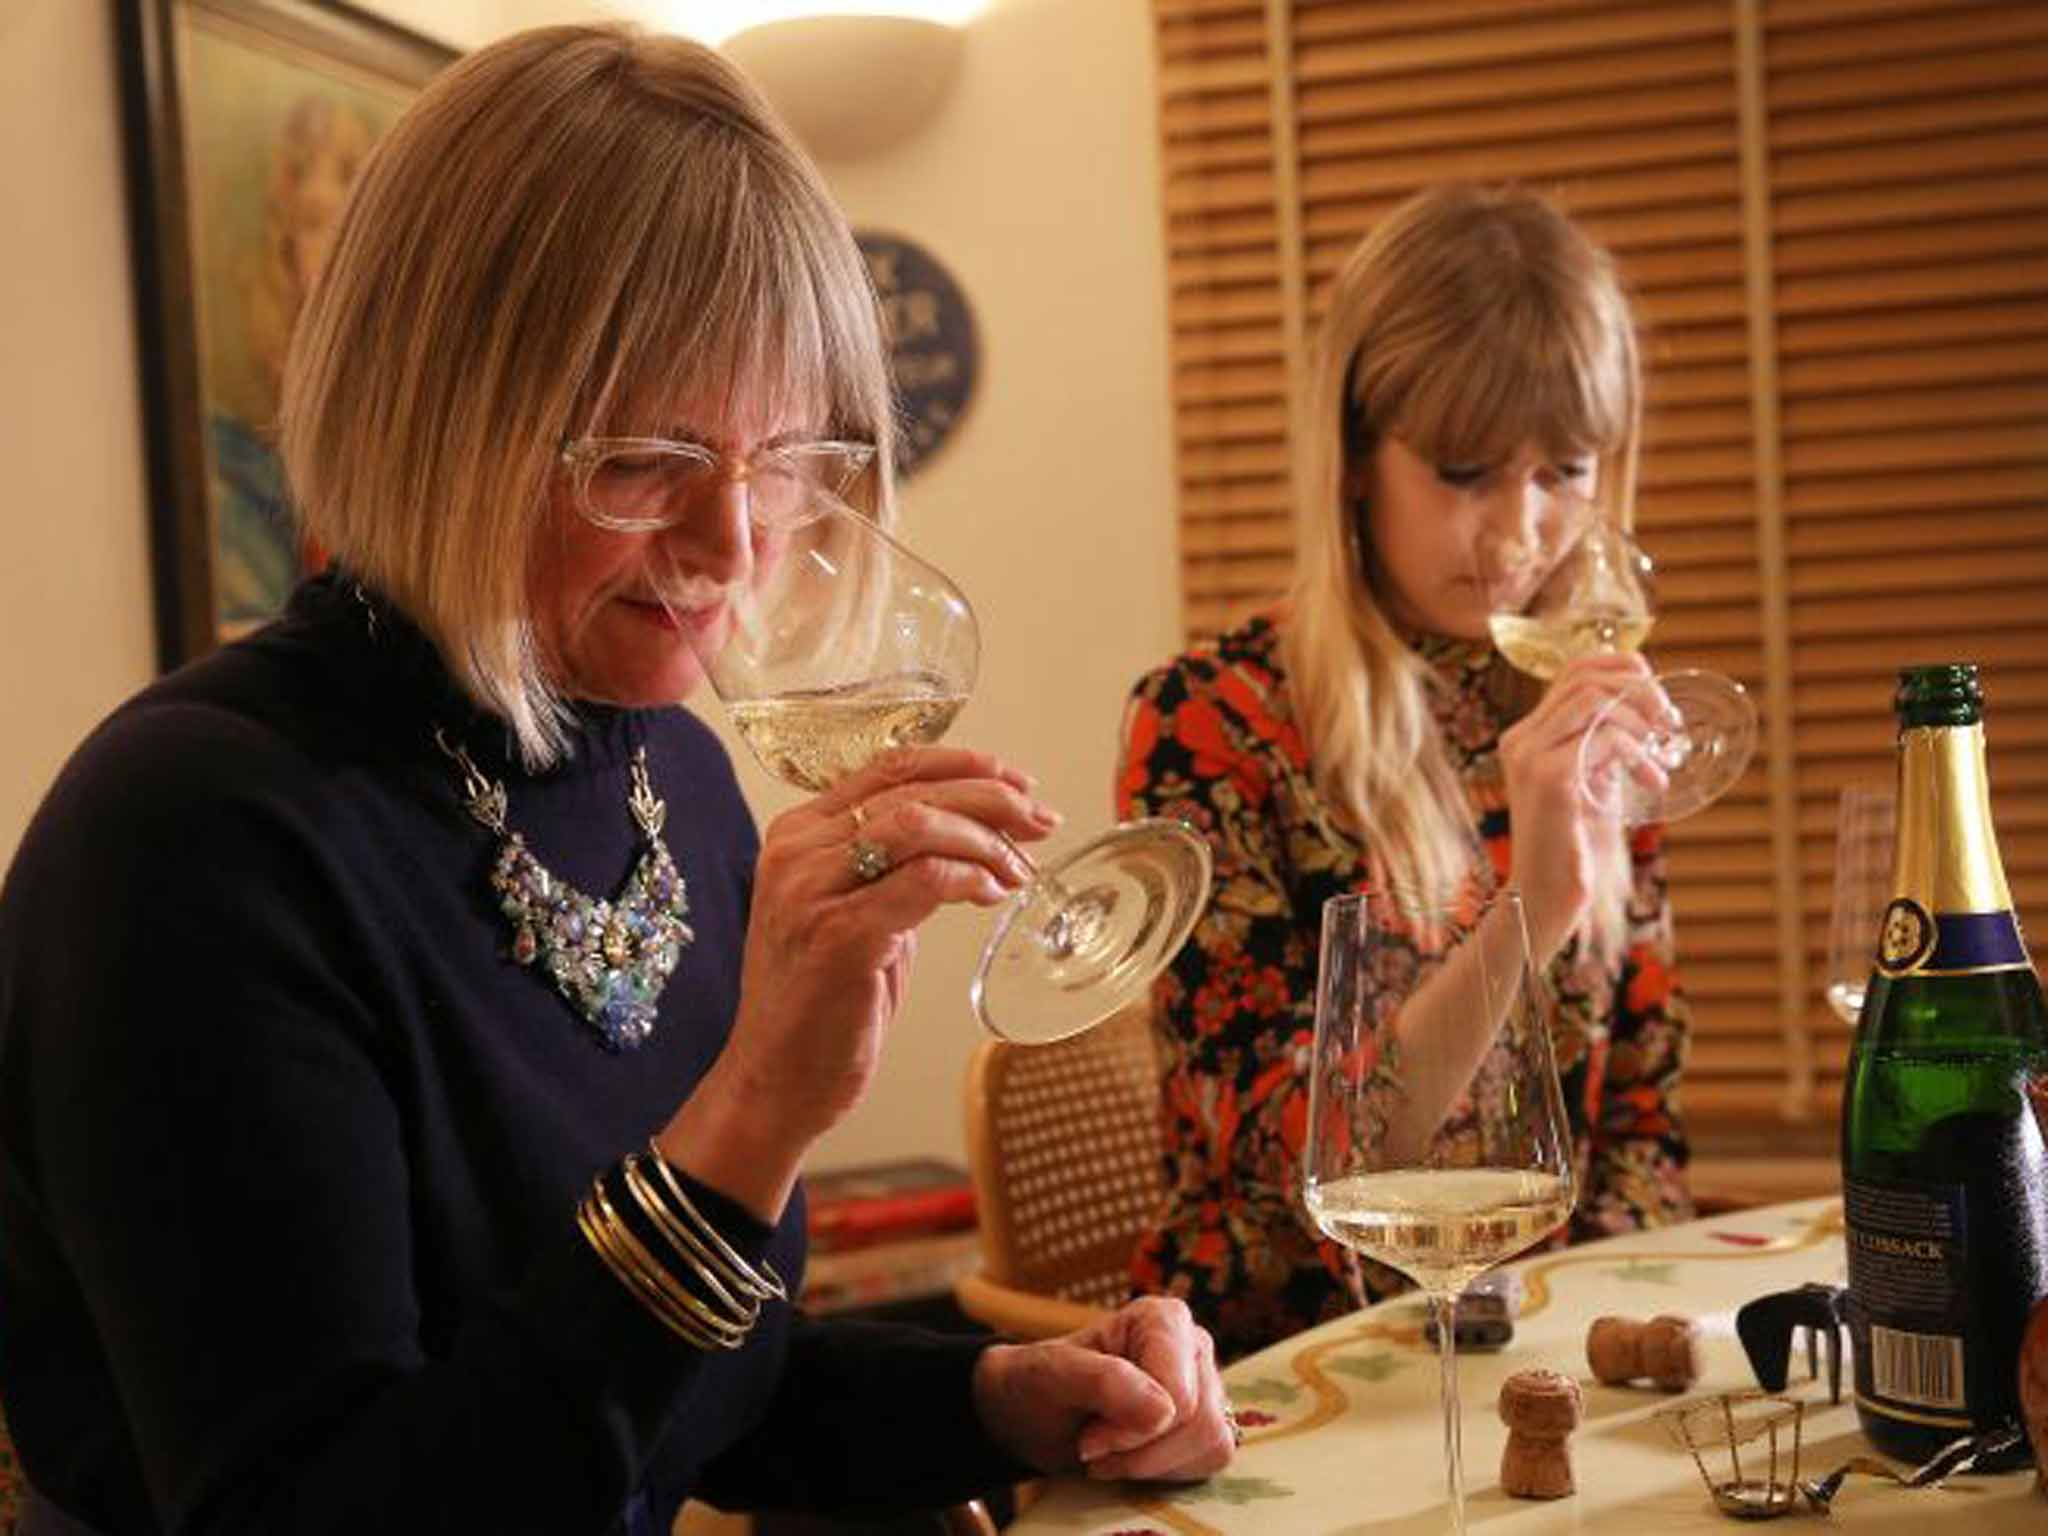 Jancis Robinson's new book aims to turn amateur oenologists into wine experts in 24 hours